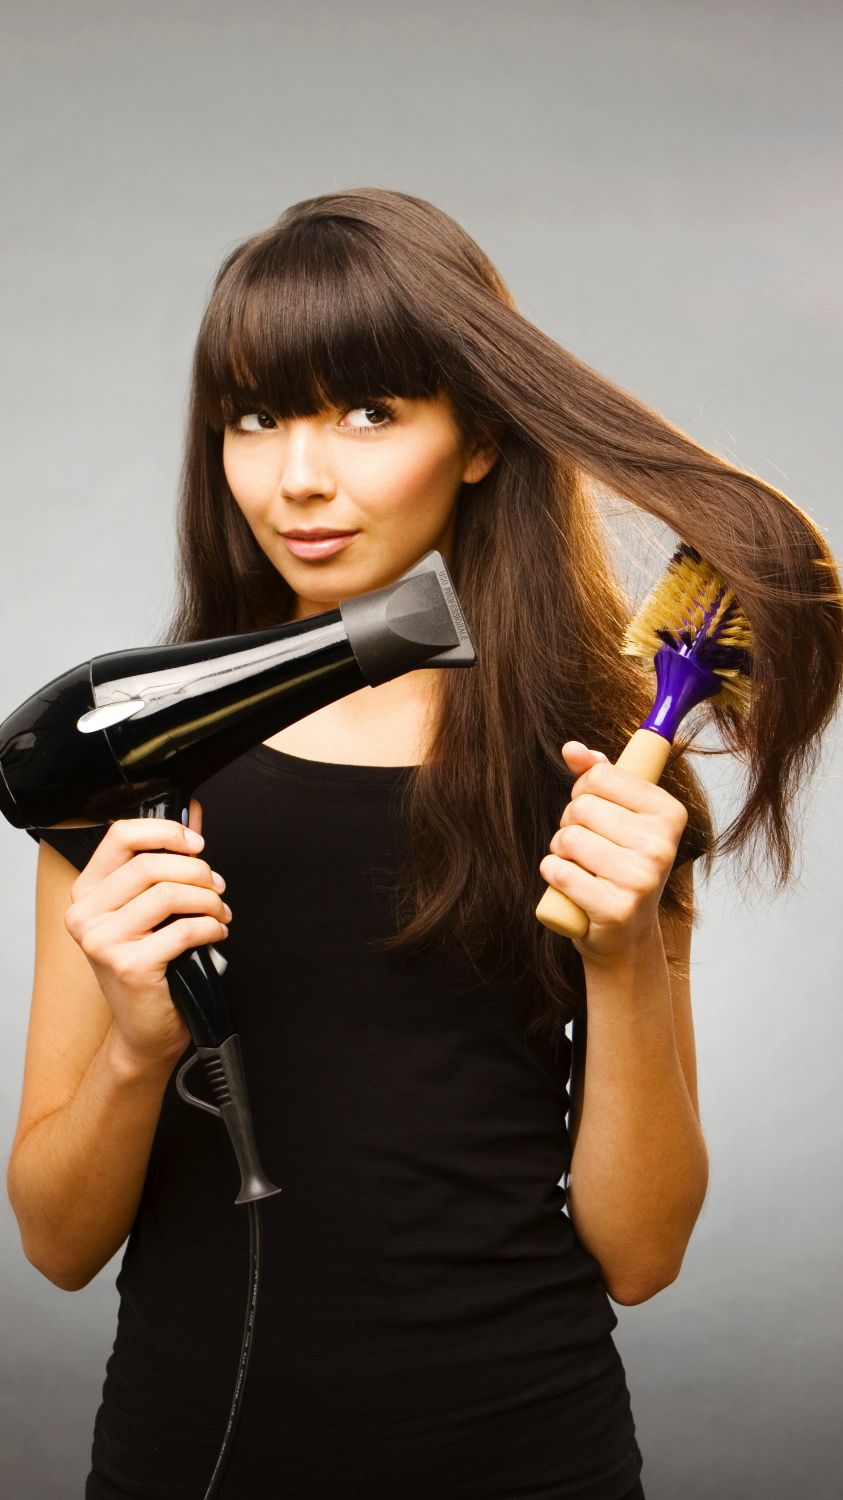 Ionic blow dryer ionic hair dryers target water molecules they are